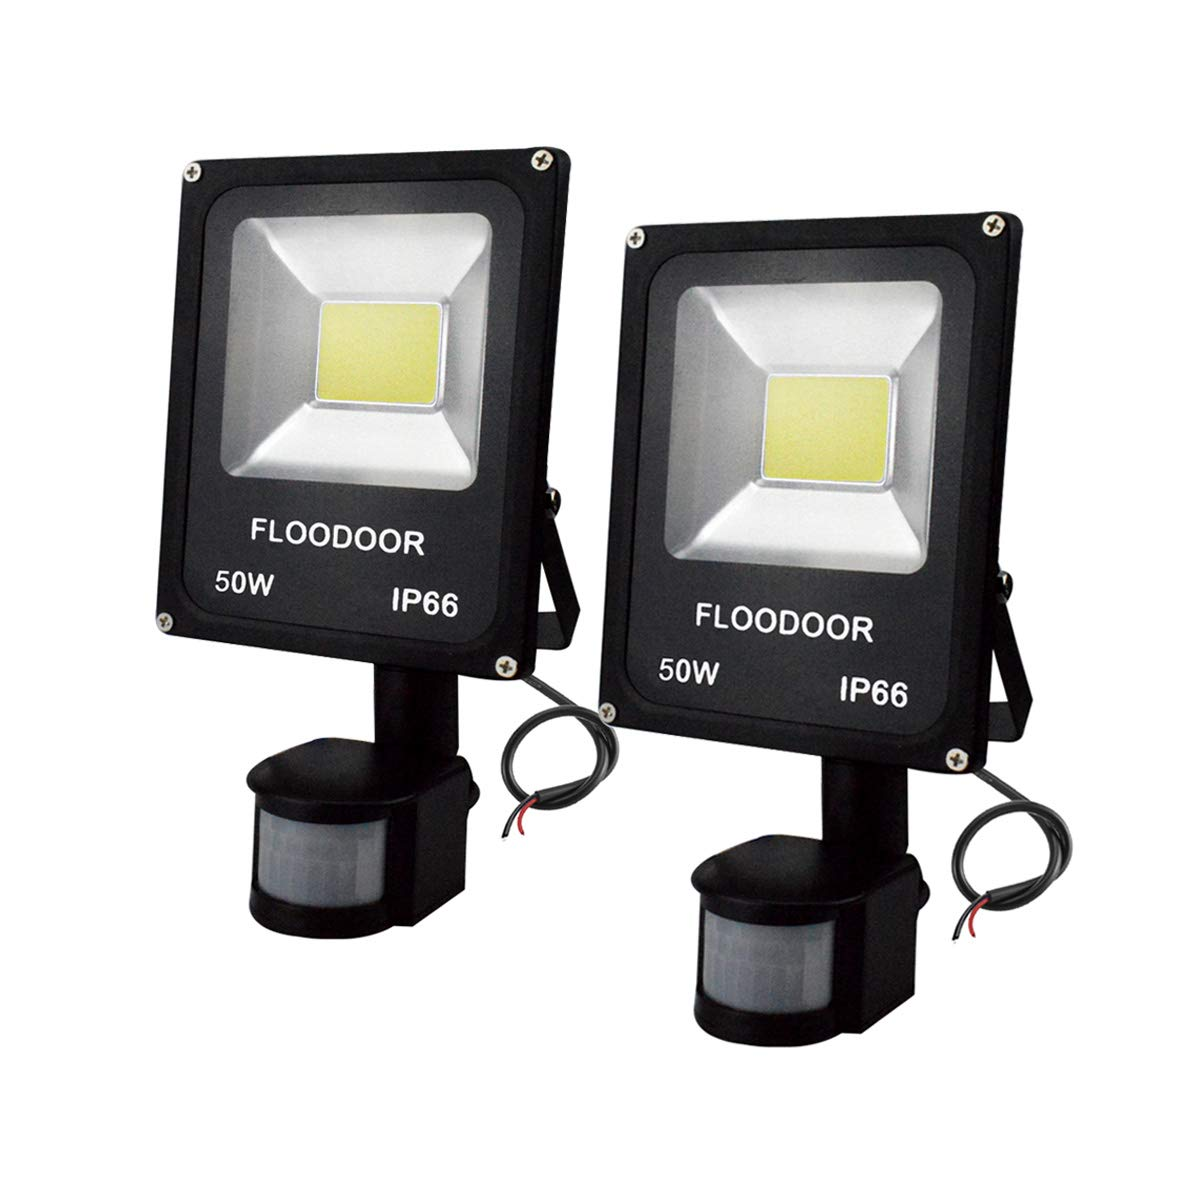 FLOODOOR Motion Sensor Light 50W 12-24V AC DC Outdoor Flood Light, Daylight White, 6000K, 4500LM, IP66 Safety Waterproof Security Outdoor Light for Garage, Street and Garden 2 Pack